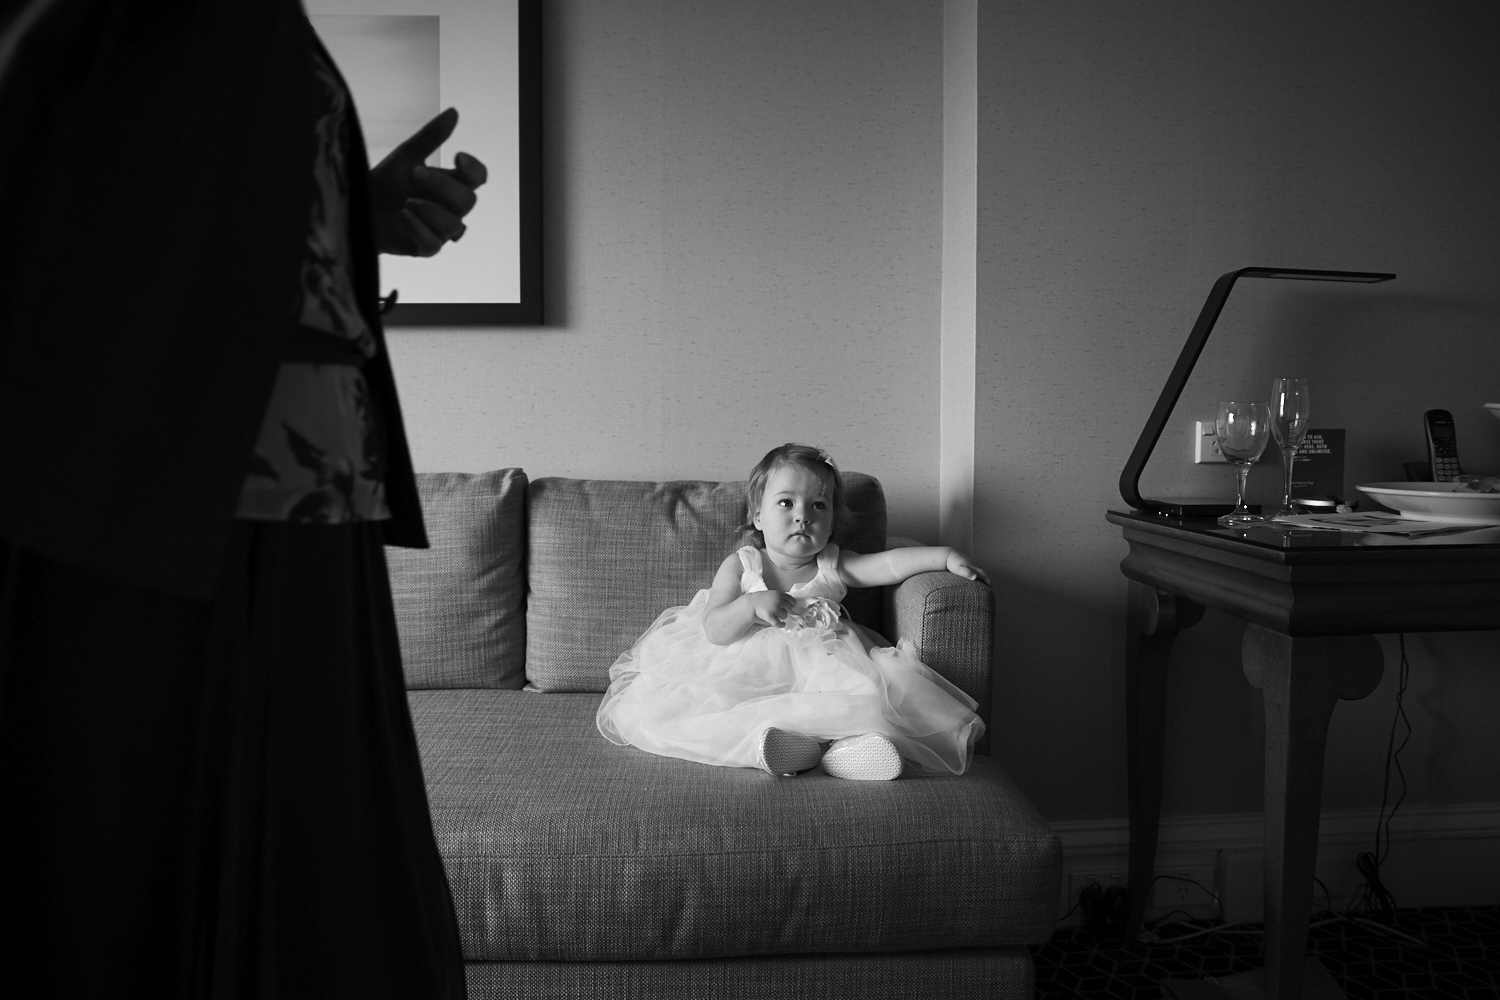 Flower girl on couch